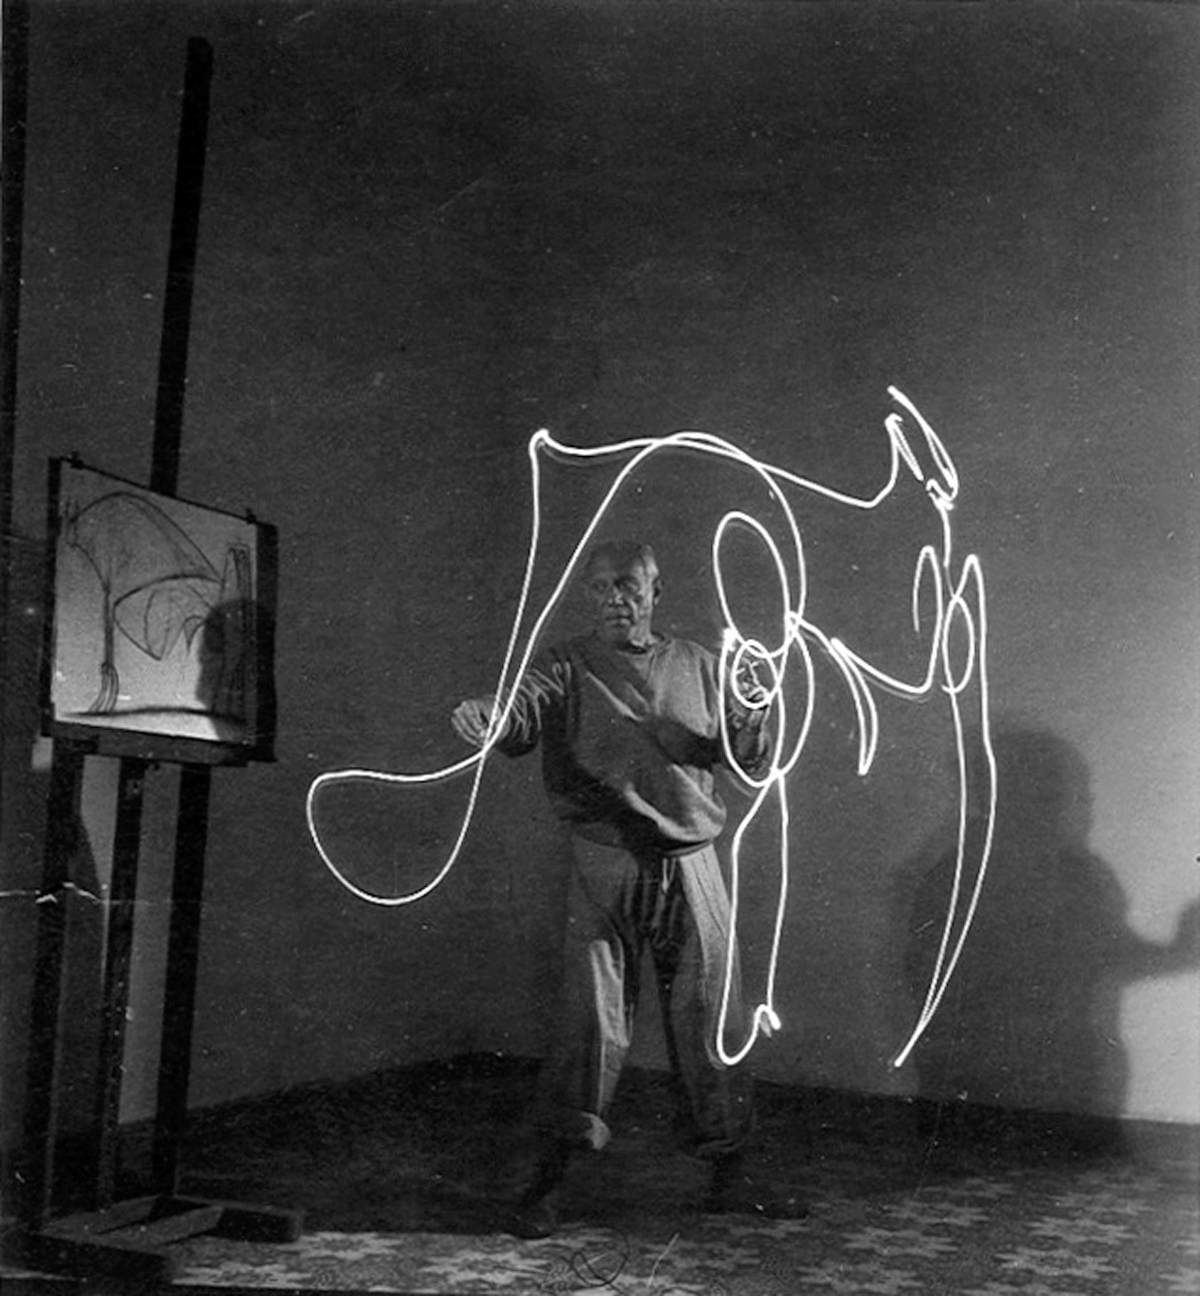 Artist Pablo Picasso painting with light during LIFE photo shoot. Vallauris, France December 31, 1948. (Photo by Gjon Mili/The LIFE Picture Collection/Getty Images)